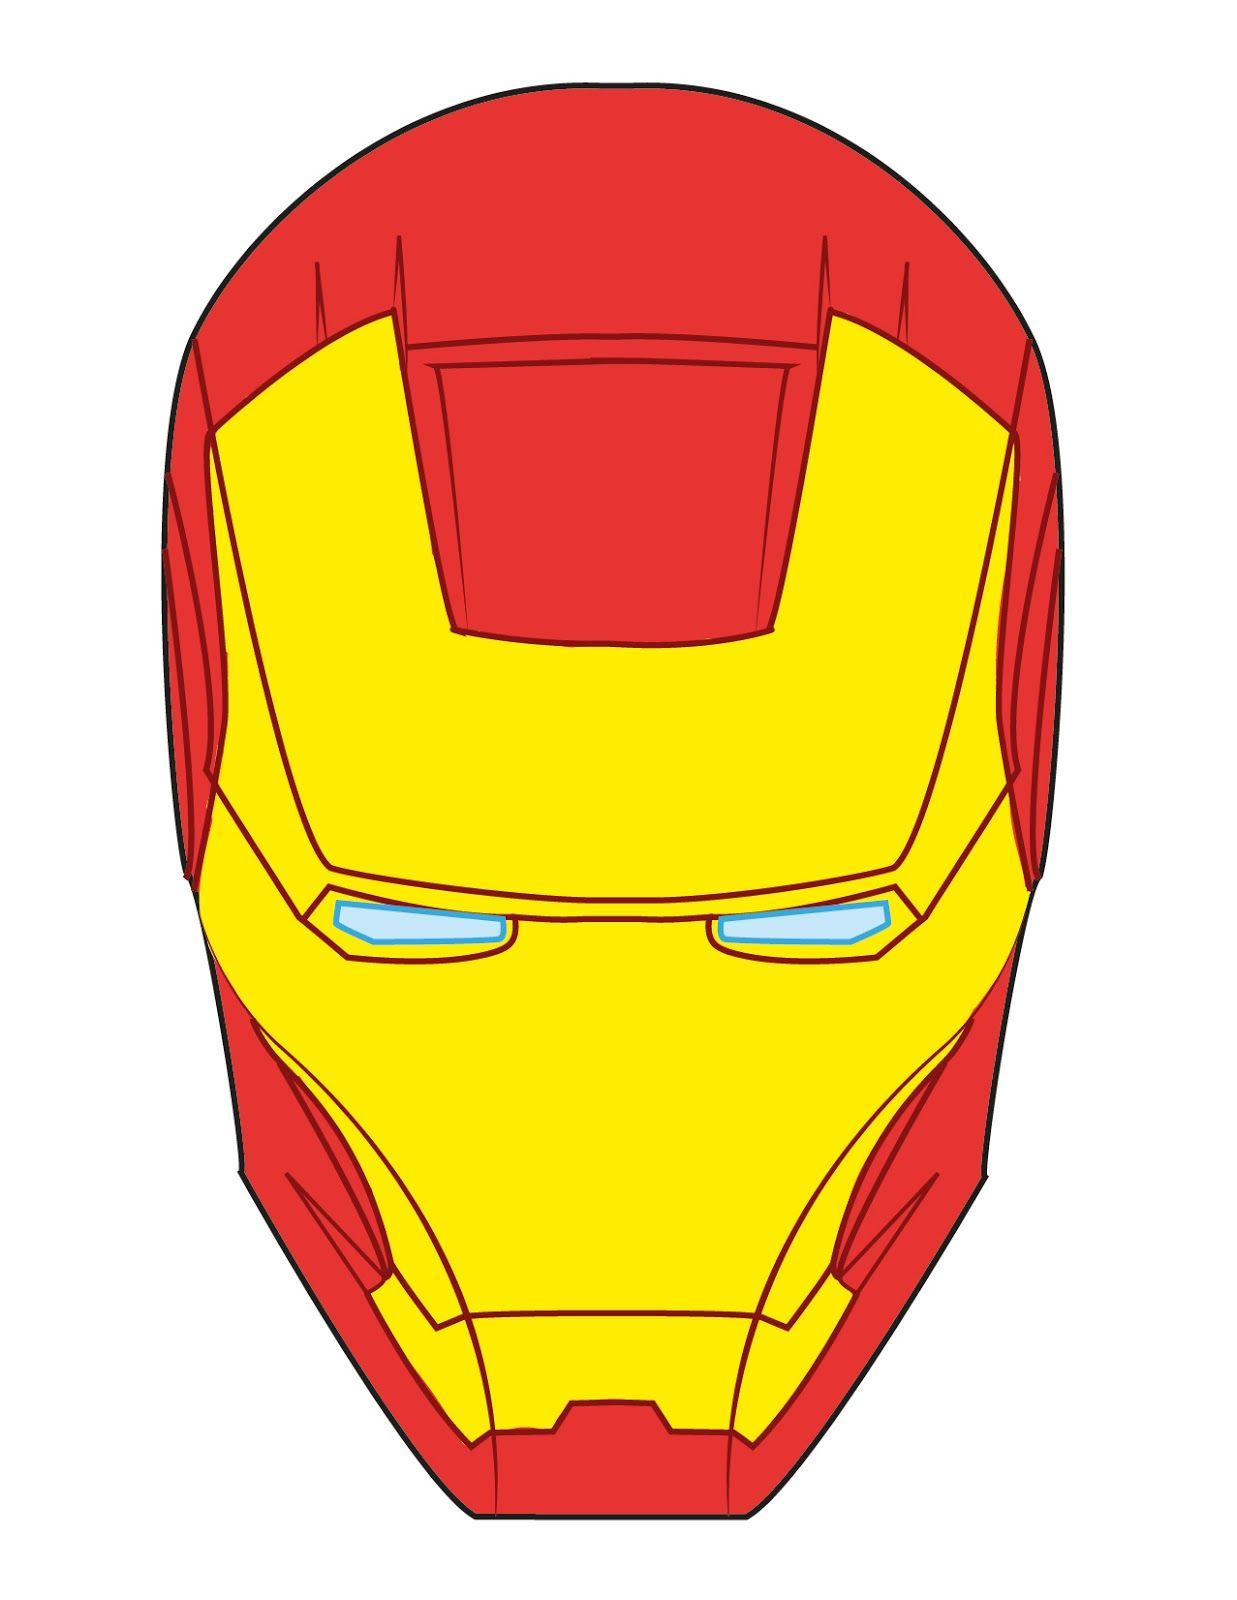 Iron Man Face Template For Cake Iron man face cake pin it.